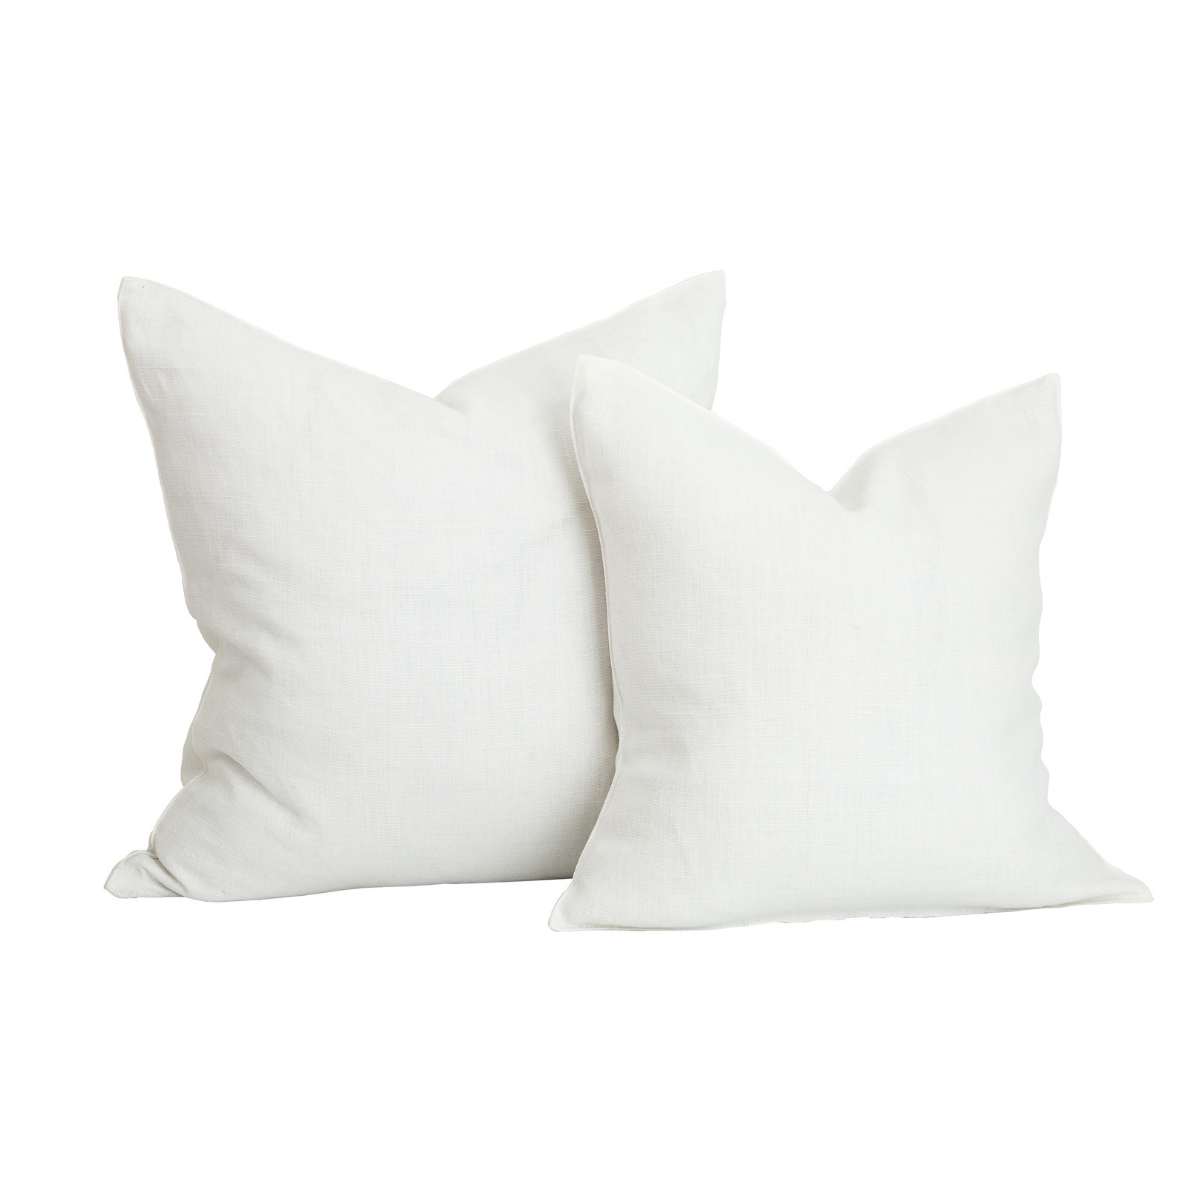 Napoli Vintage Optic White Pillow Cover